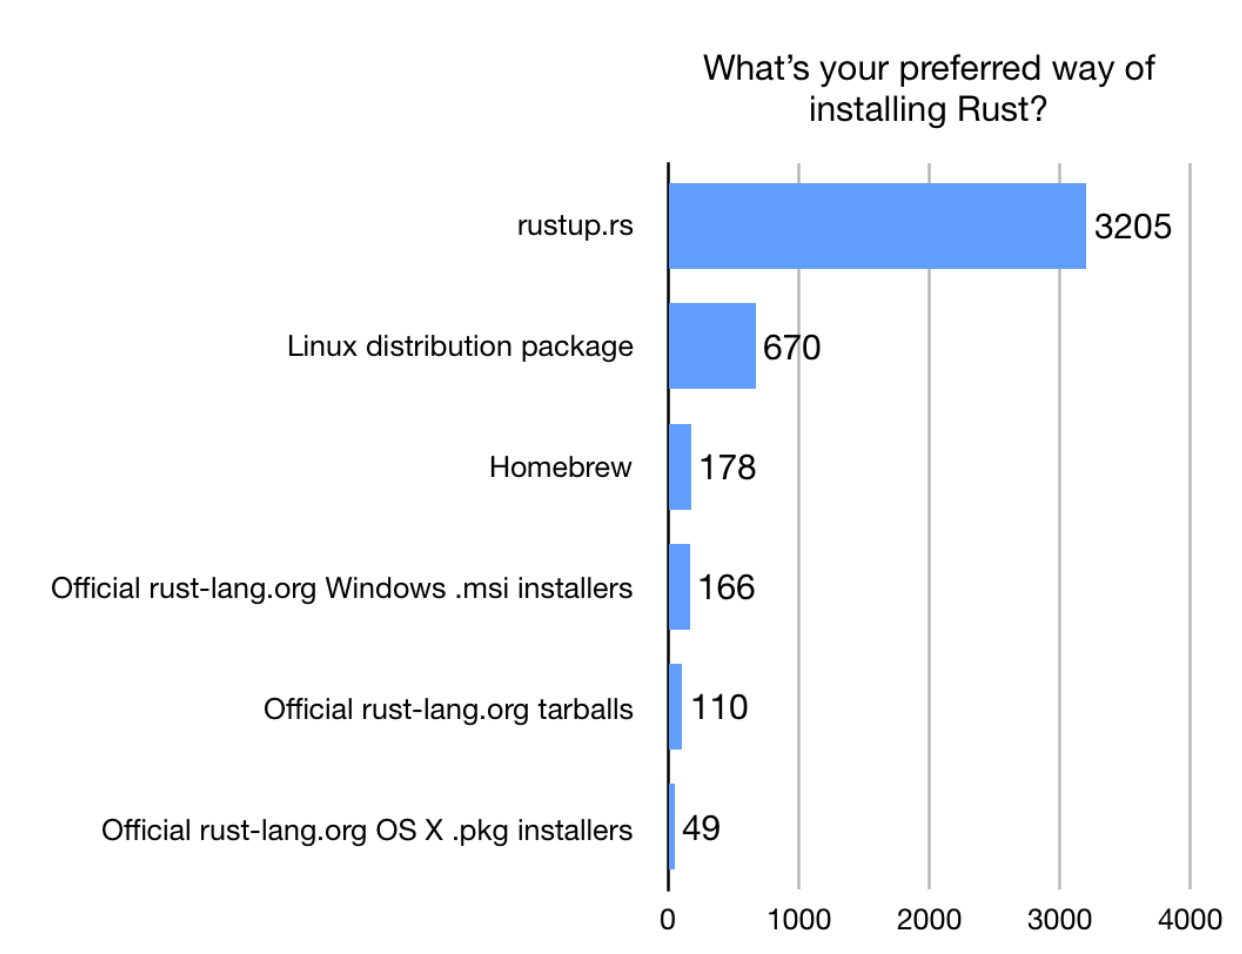 90.2% rustup, 18.9% linux distros, 5% homebrew, 4.7% official .msi, 3.1% official tarball, 1.4% official mac pkg